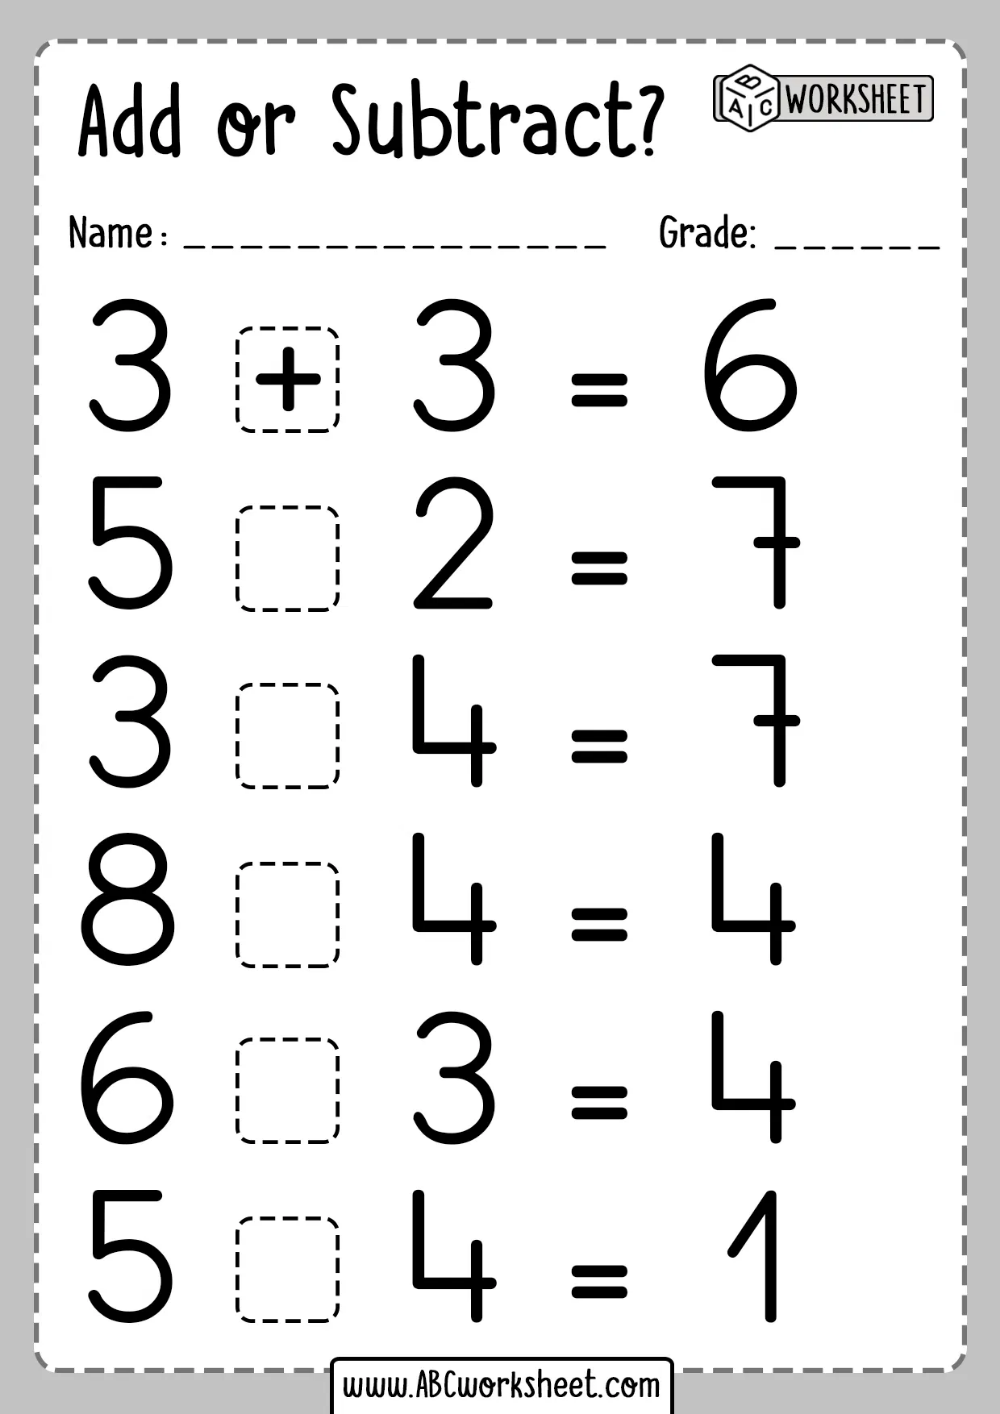 Single Digit Addition And Subtraction Worksheet Subtraction Worksheets Math Addition Worksheets Math Worksheets [ 1414 x 1000 Pixel ]